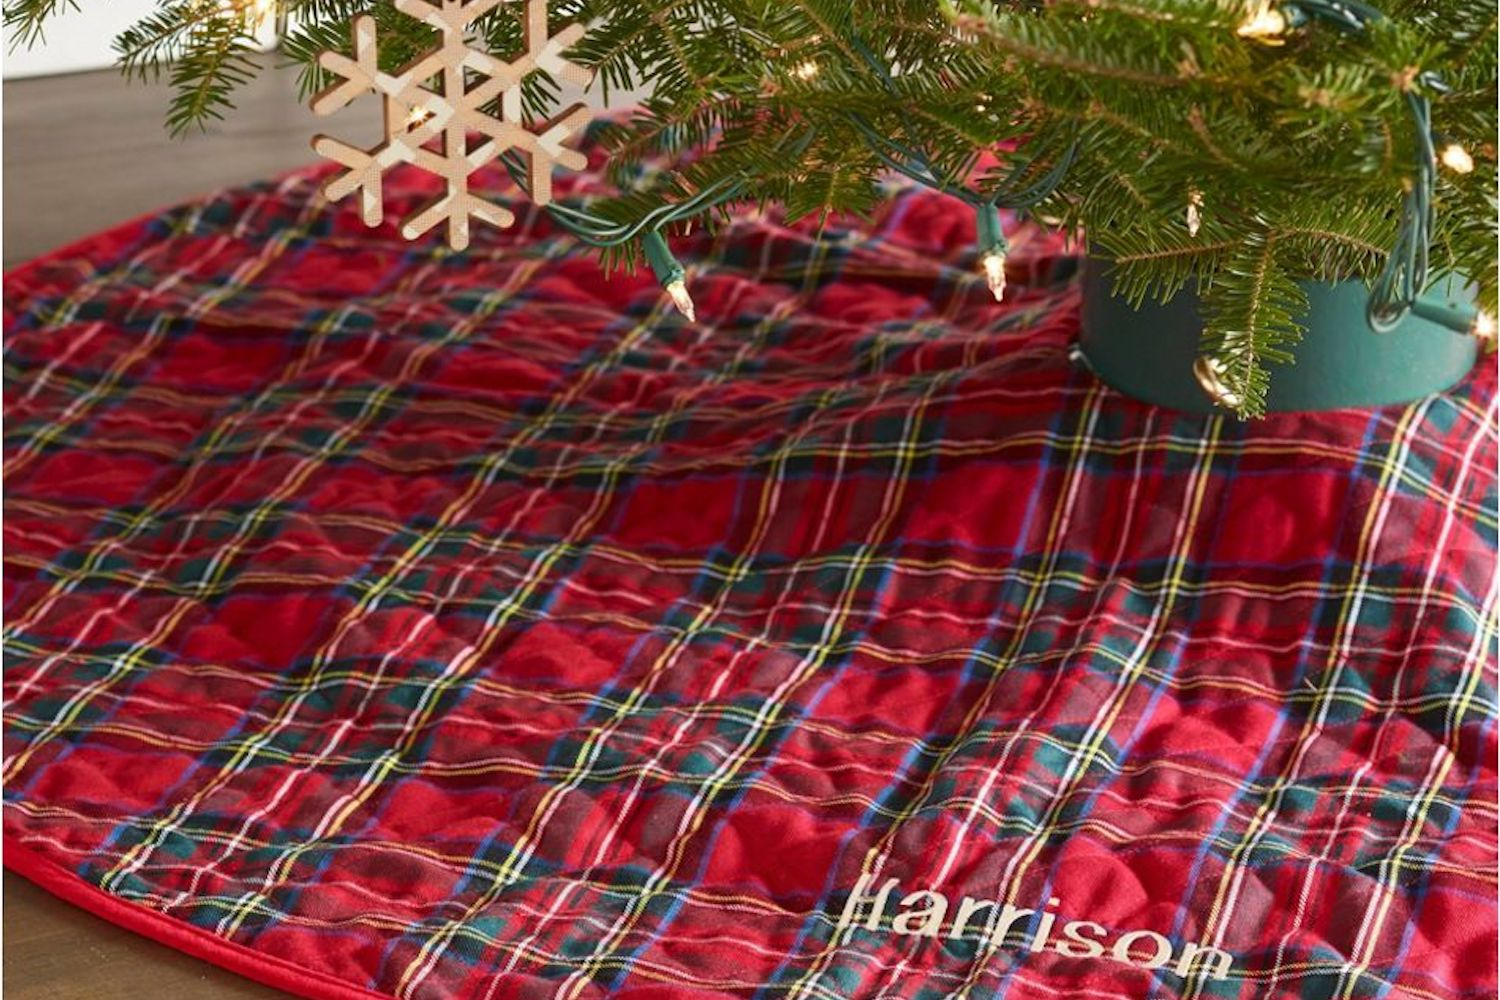 L.L. Bean Classic tree skirt